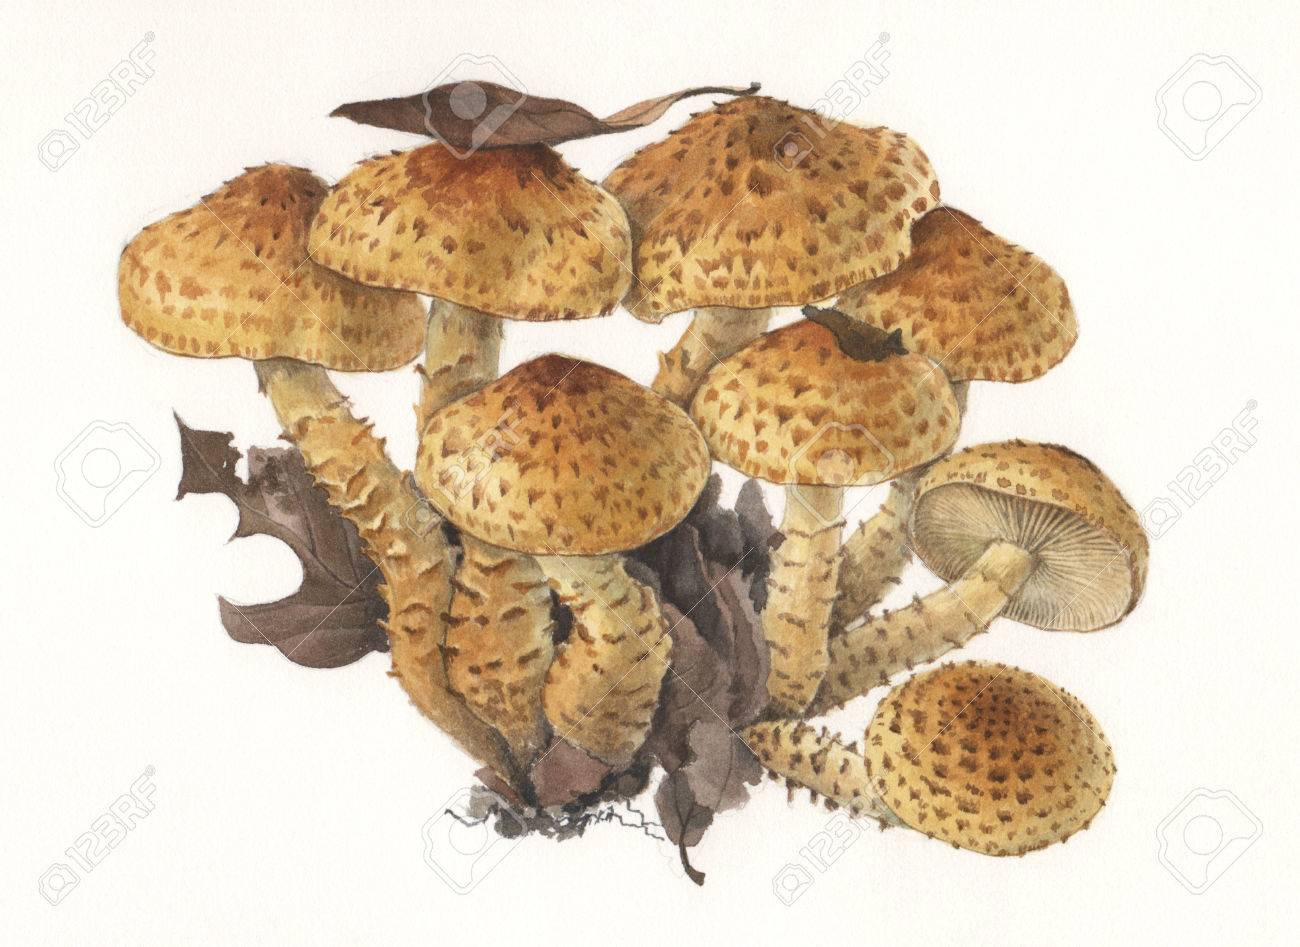 Illustration of a group of wild mushrooms in natural context Stock Photo - 24545209